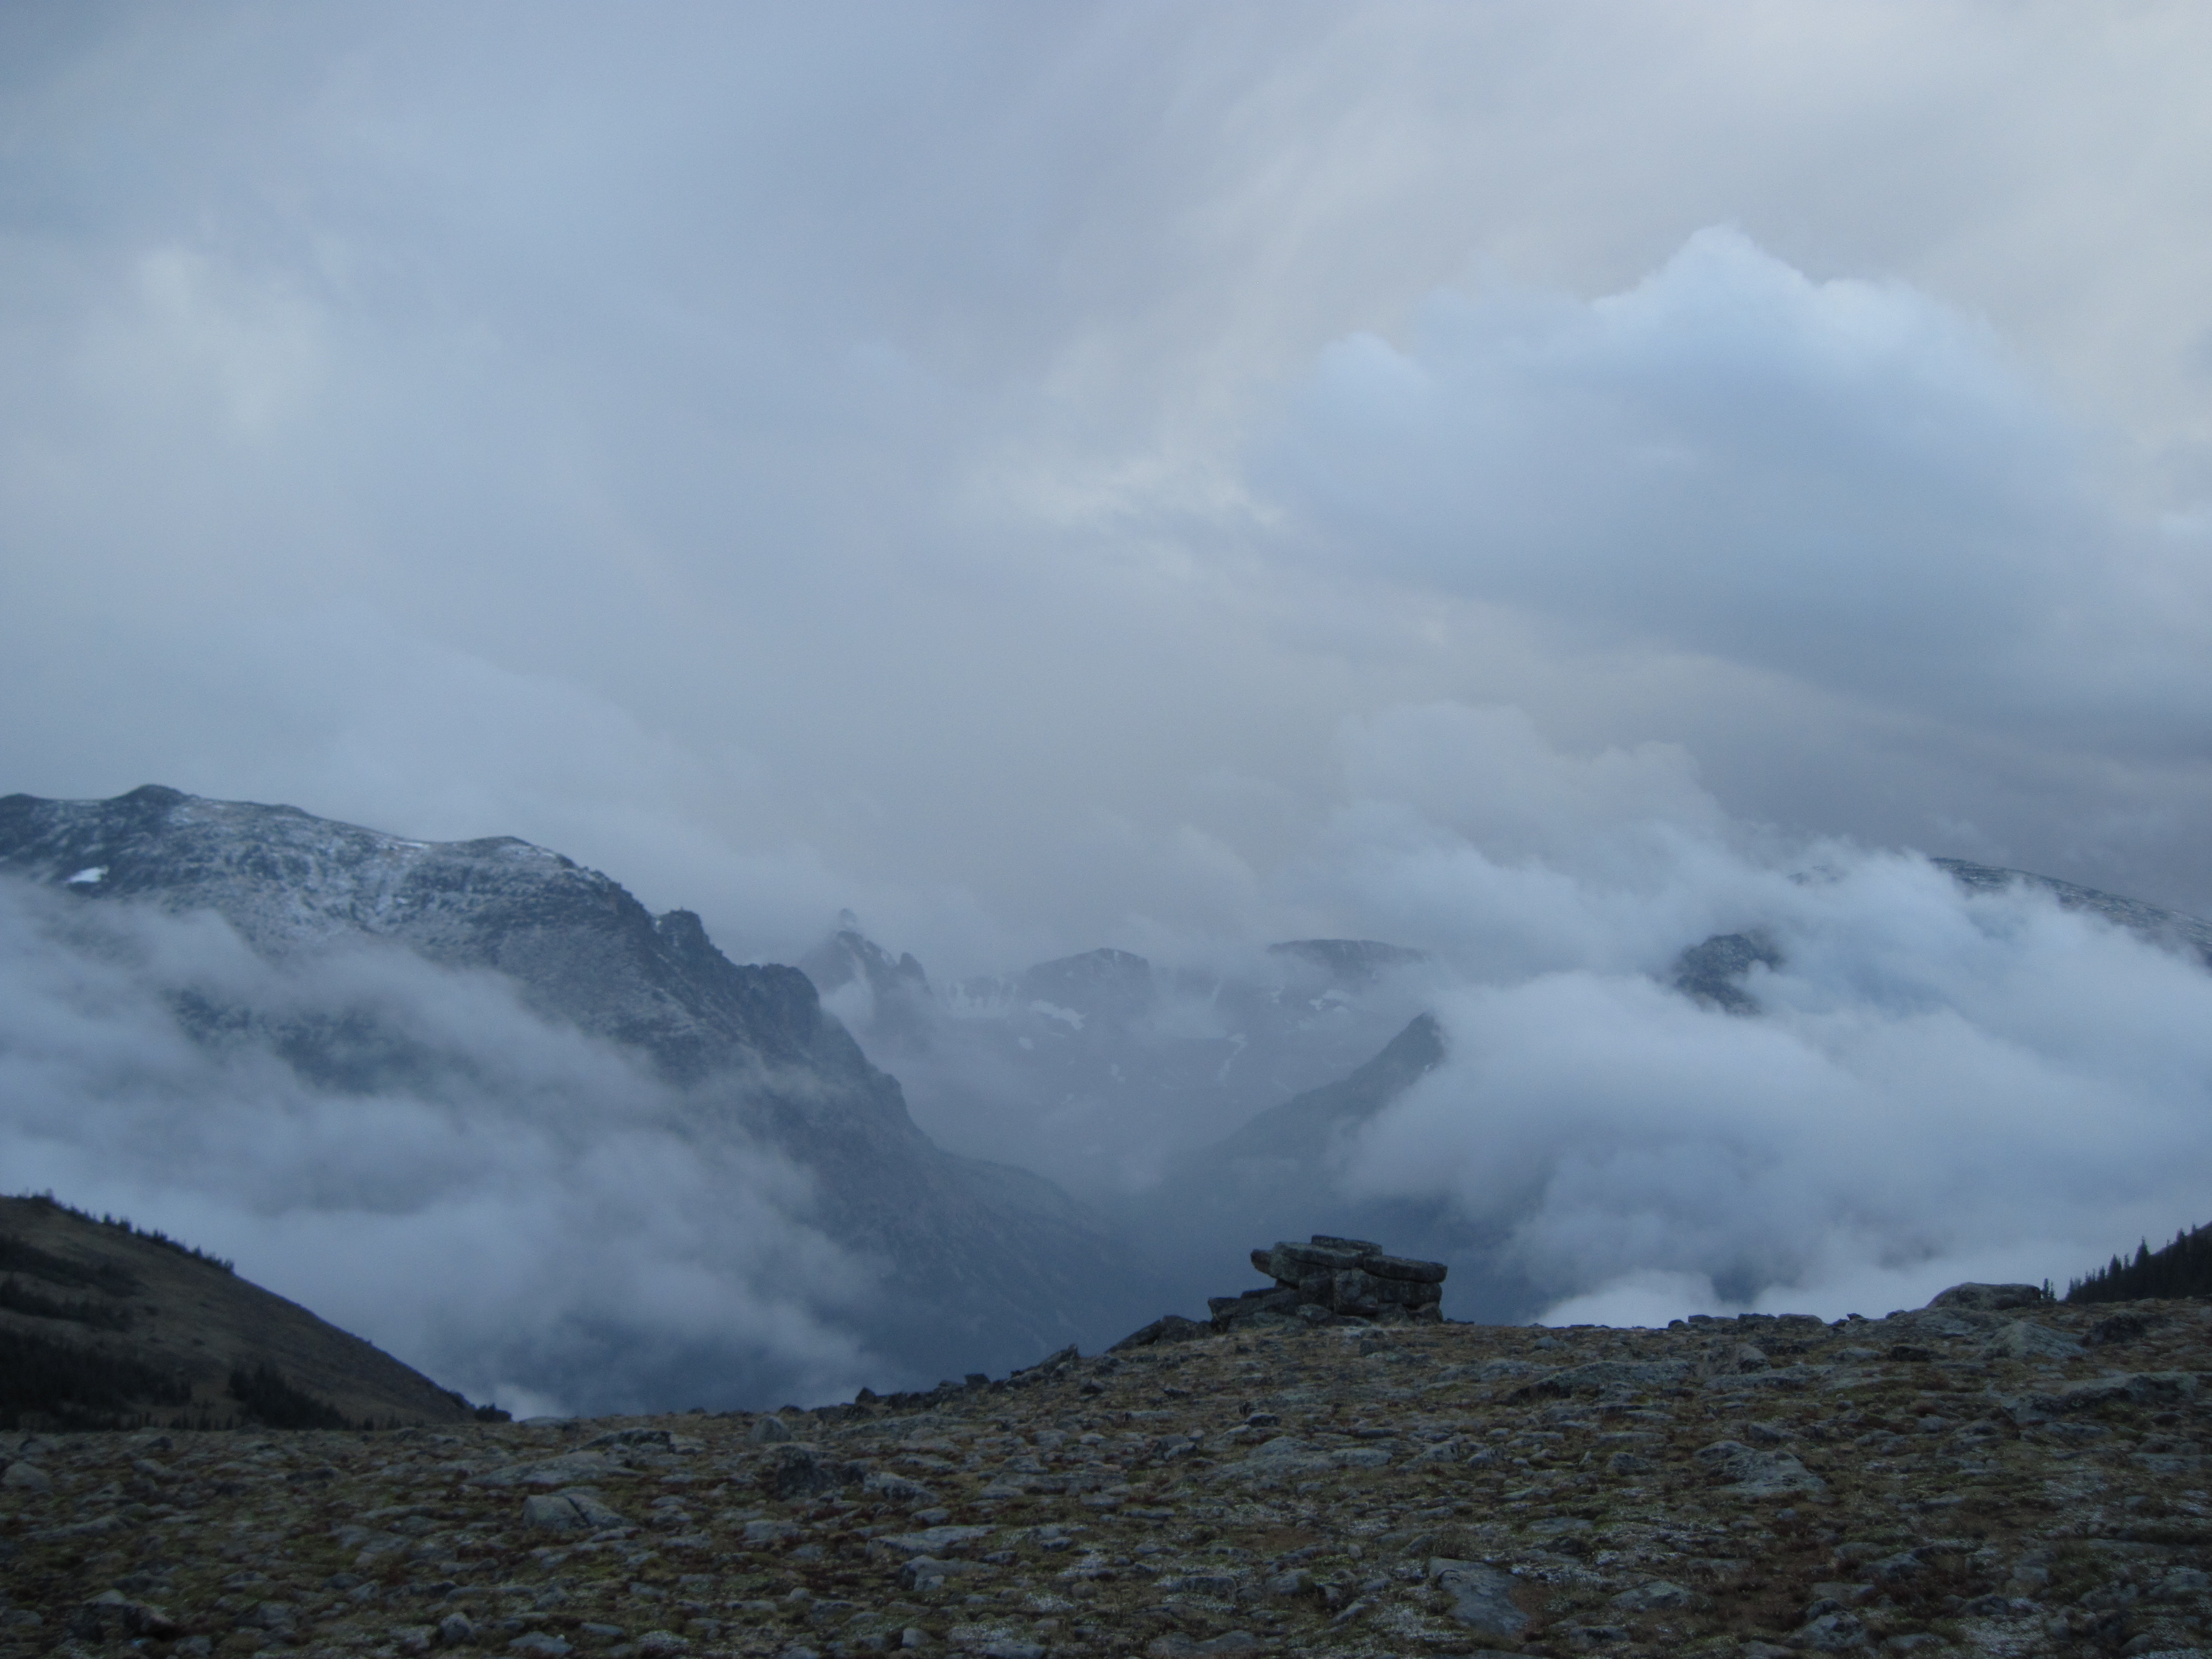 A sudden September storm brings snow along the Ute Trail.